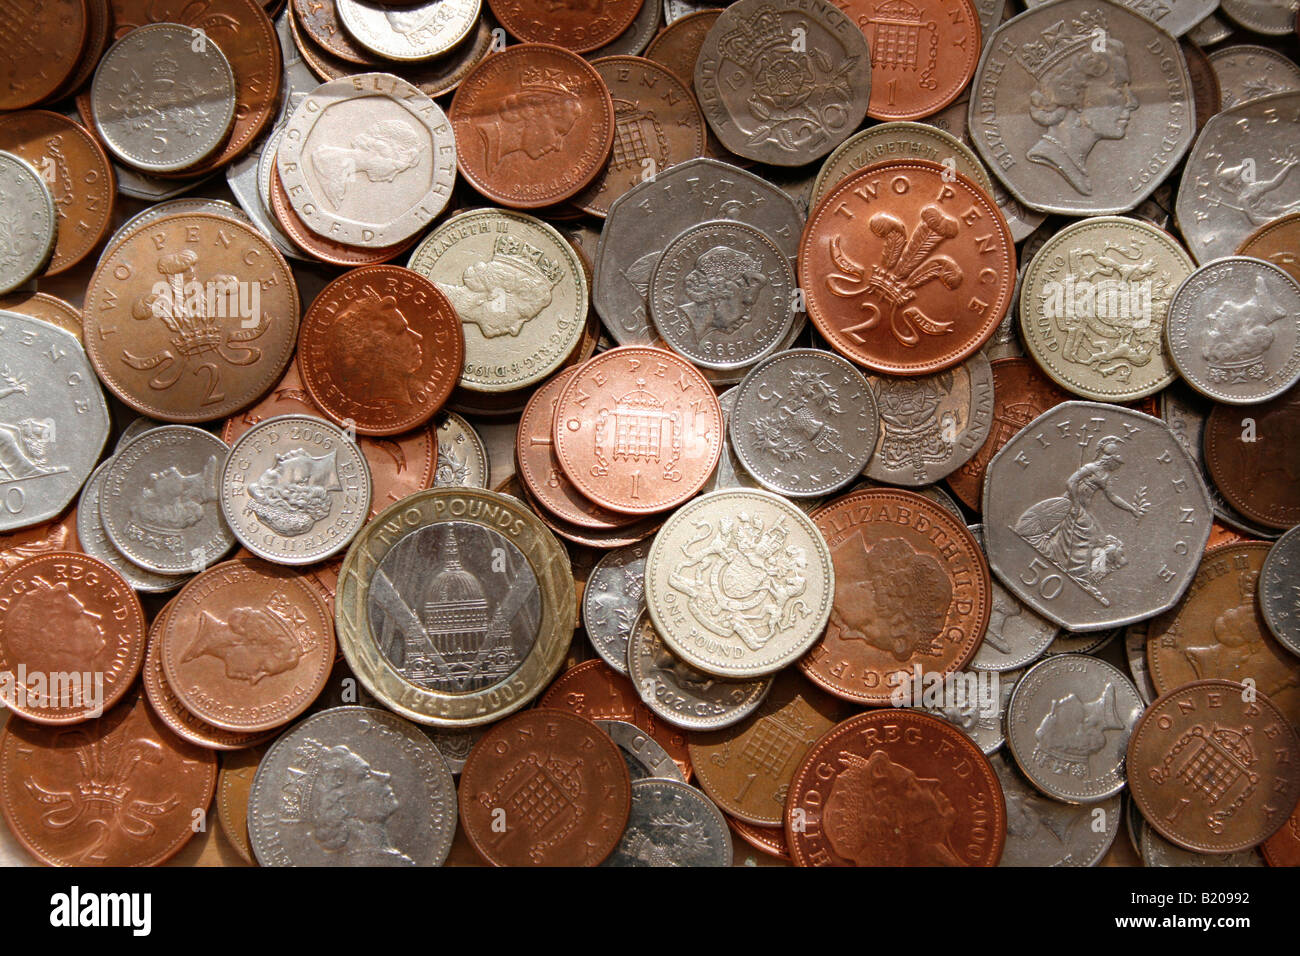 All current UK coins in common usage are laid out, copper coins, silver coins, £1 and £2 coins. - Stock Image